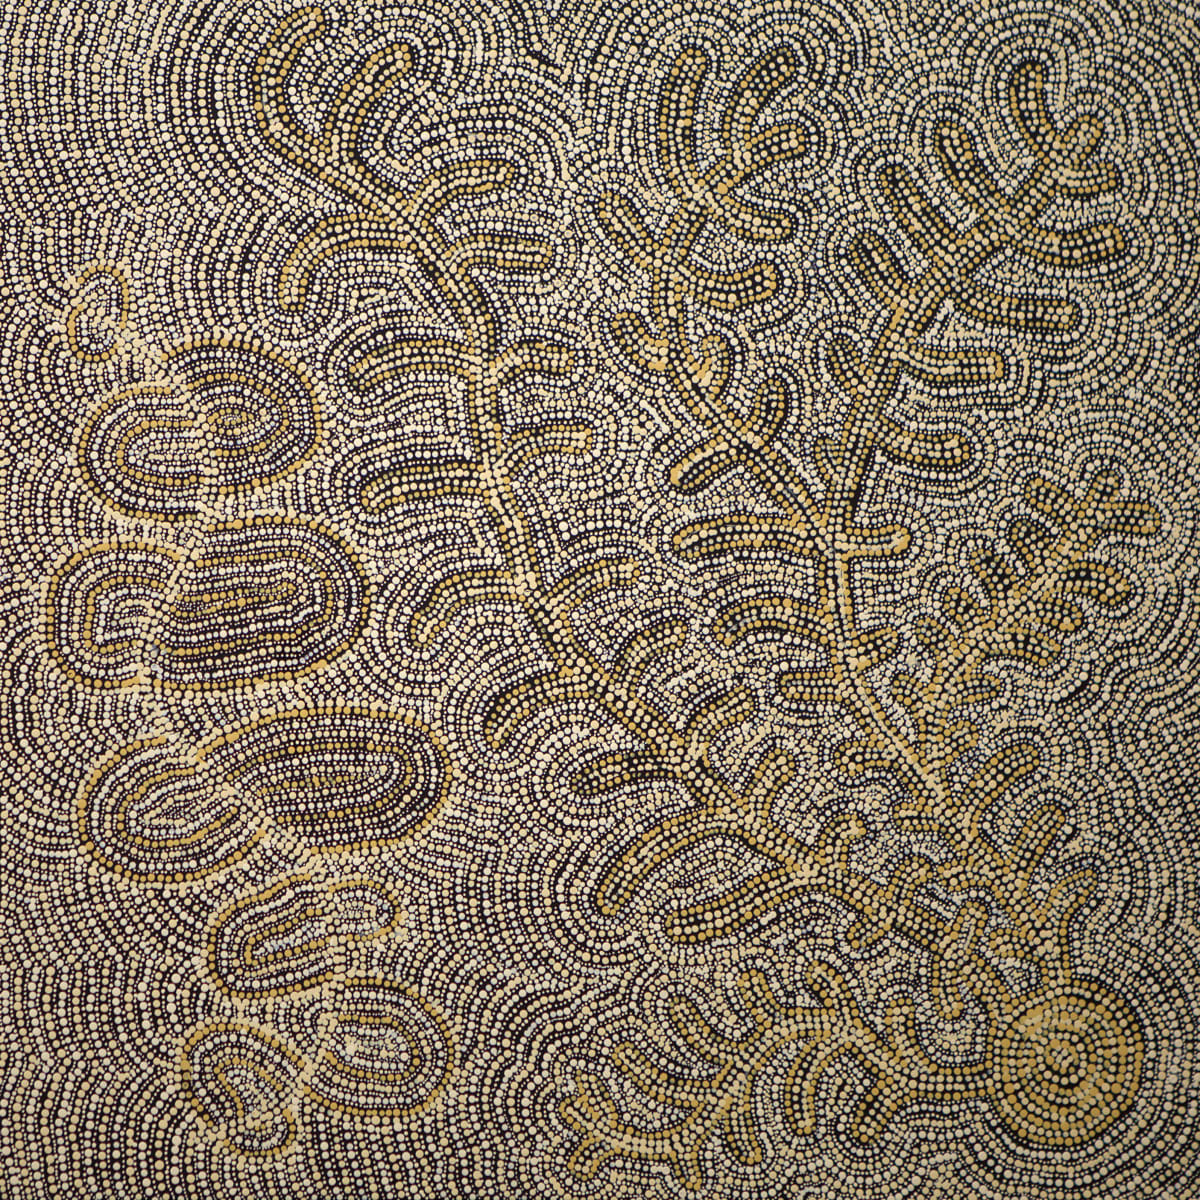 Umatji Tjitayi Kaliny-Kaliny Honey Grevillea, 2019 Acrylic on Canvas 68x68cm